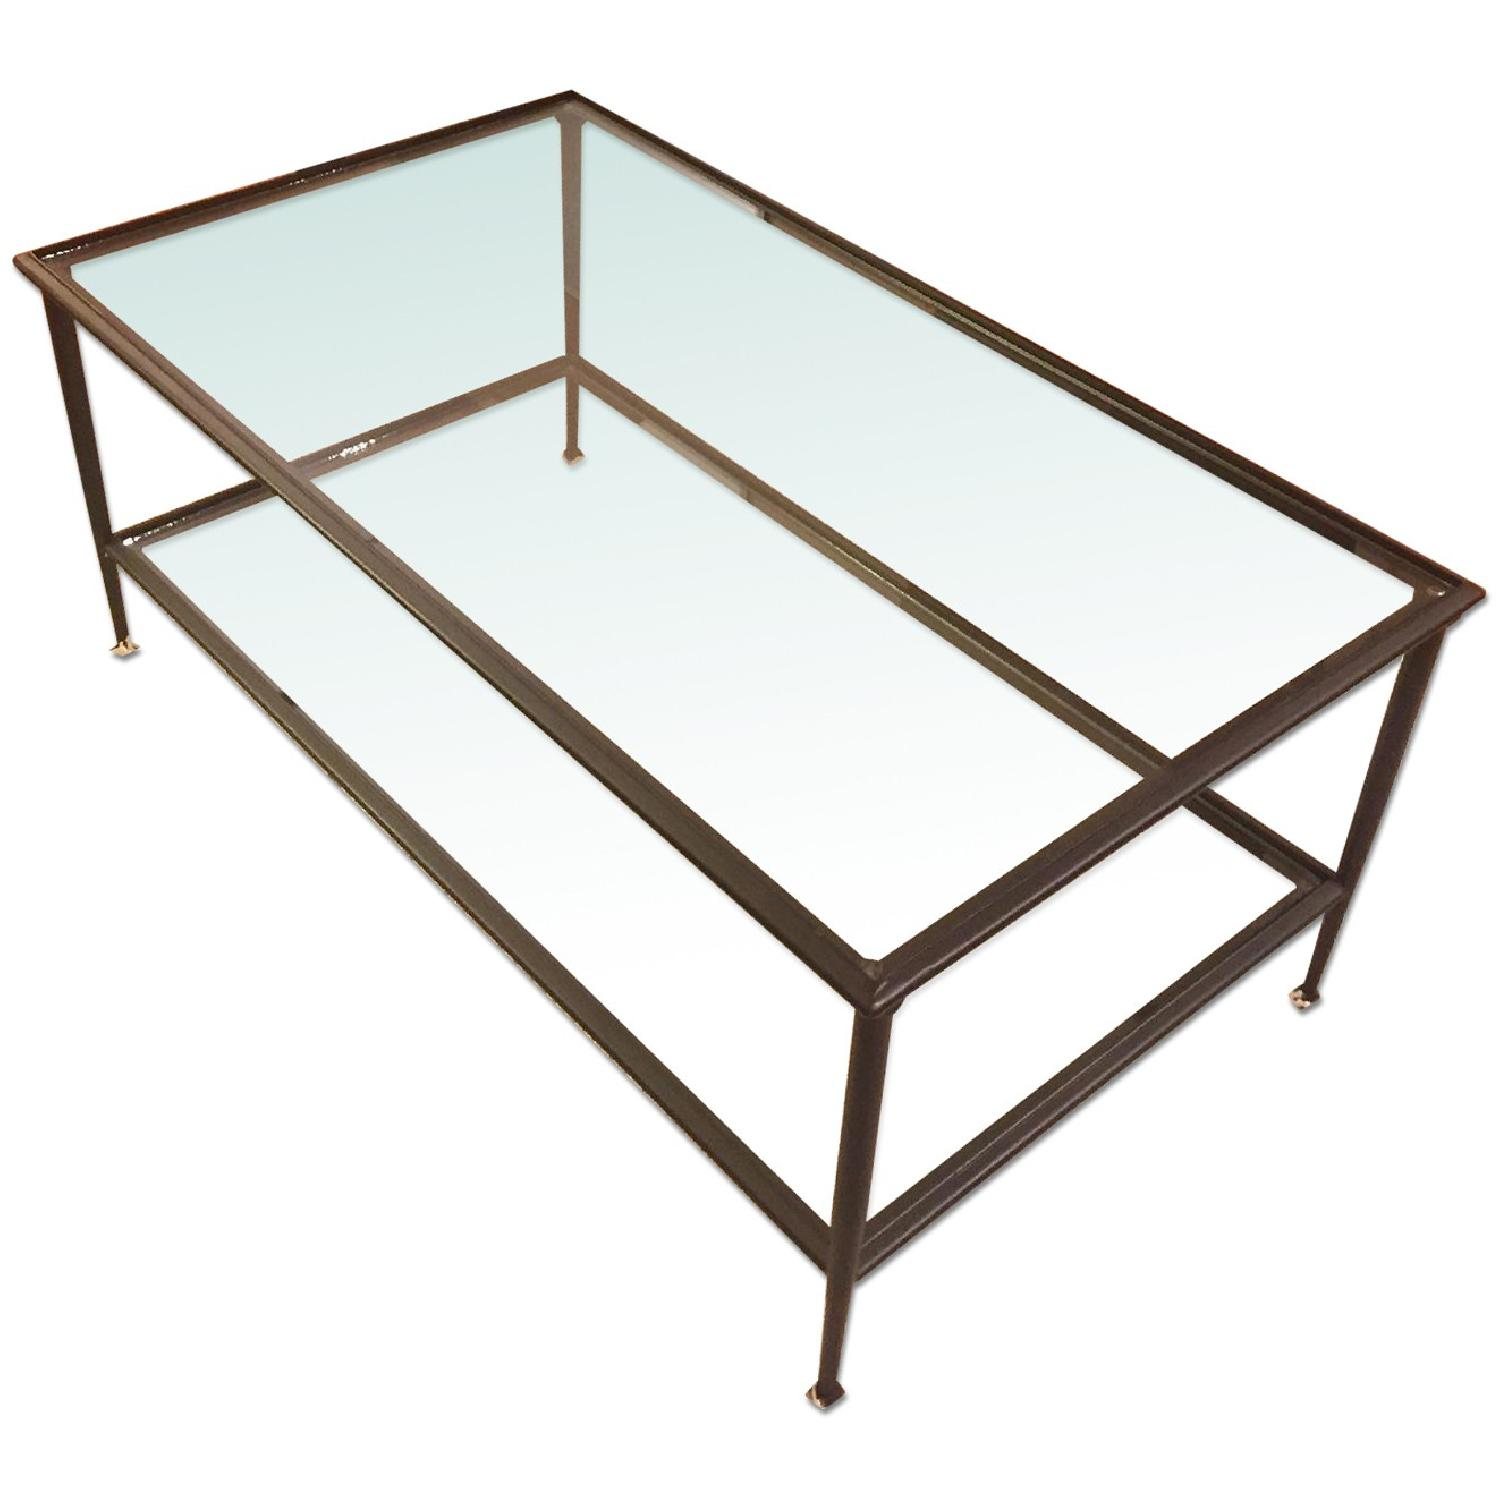 Crate & Barrel Glass Coffee Table - image-0